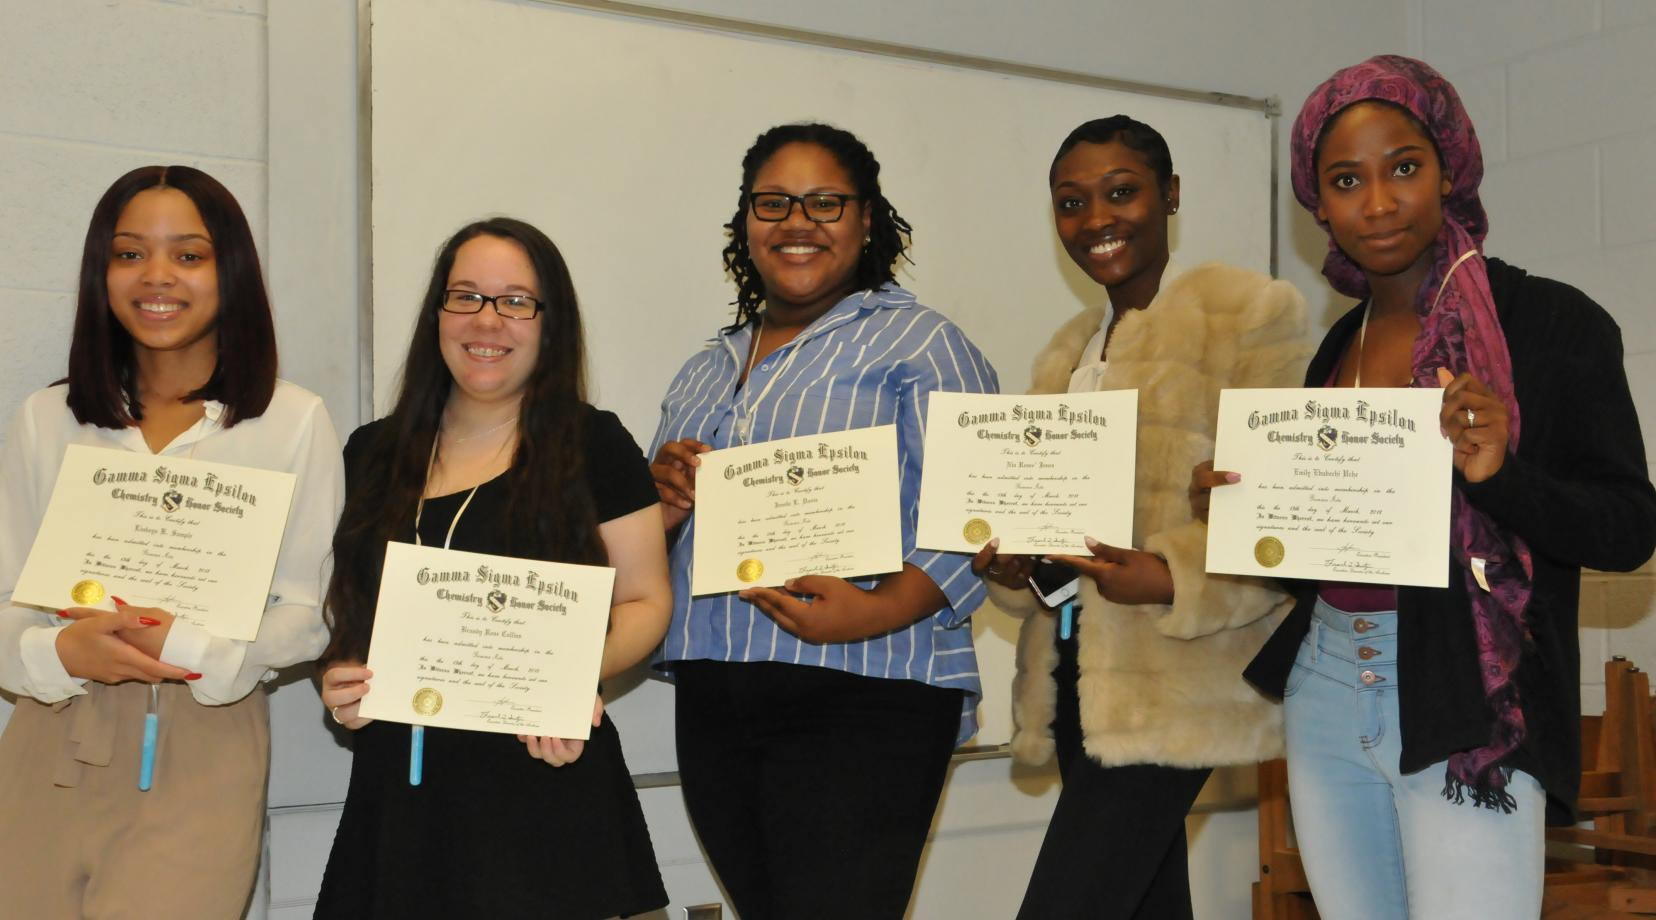 <p>Seated (l-r) Gamma Sigma Epsilon Initiates: Linkeya Sample, Emily Uche, Nia Jones, Jamila Davis, and Brandy Collins.; chemistry faculty (standing l-r): Dr. Jalaal Hayes, Dr. Cherese Winstead-Casson, Dr. Kimberly Milligan, Dr. Weiping Song, Dr. Young Gi-Kim, and Dr. Bizuneh Workie</p>